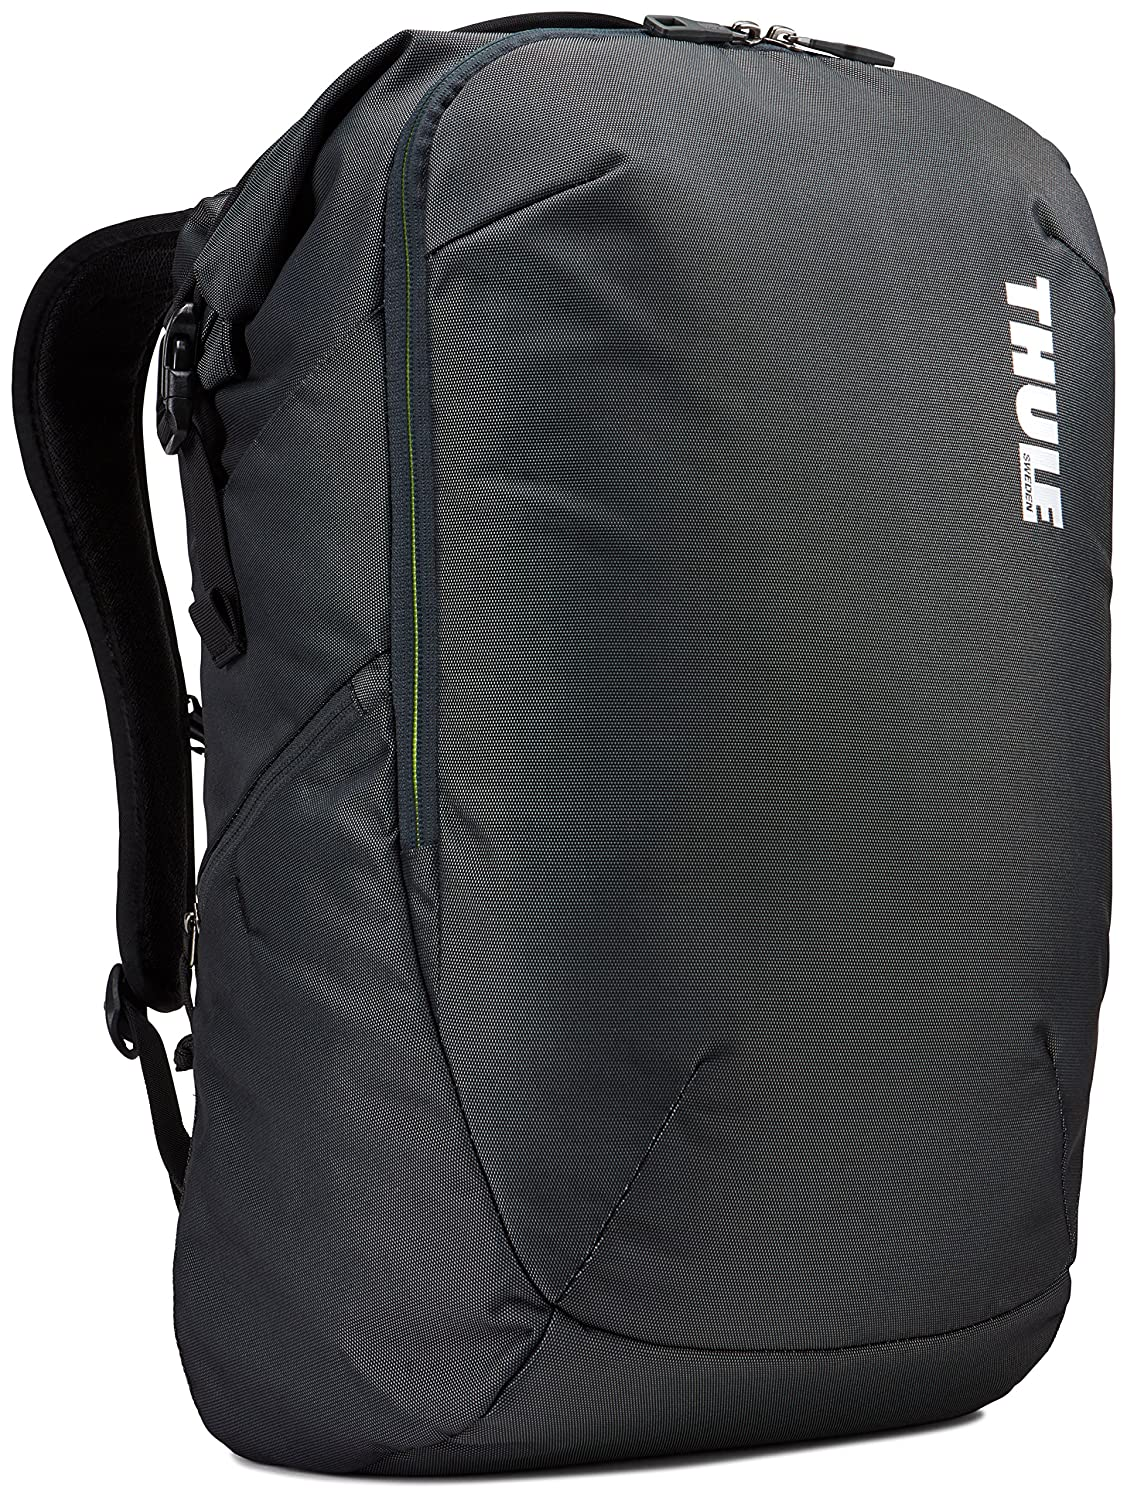 The Thule Subterra Travel Backpack 34L travel product recommended by Dominique on Lifney.